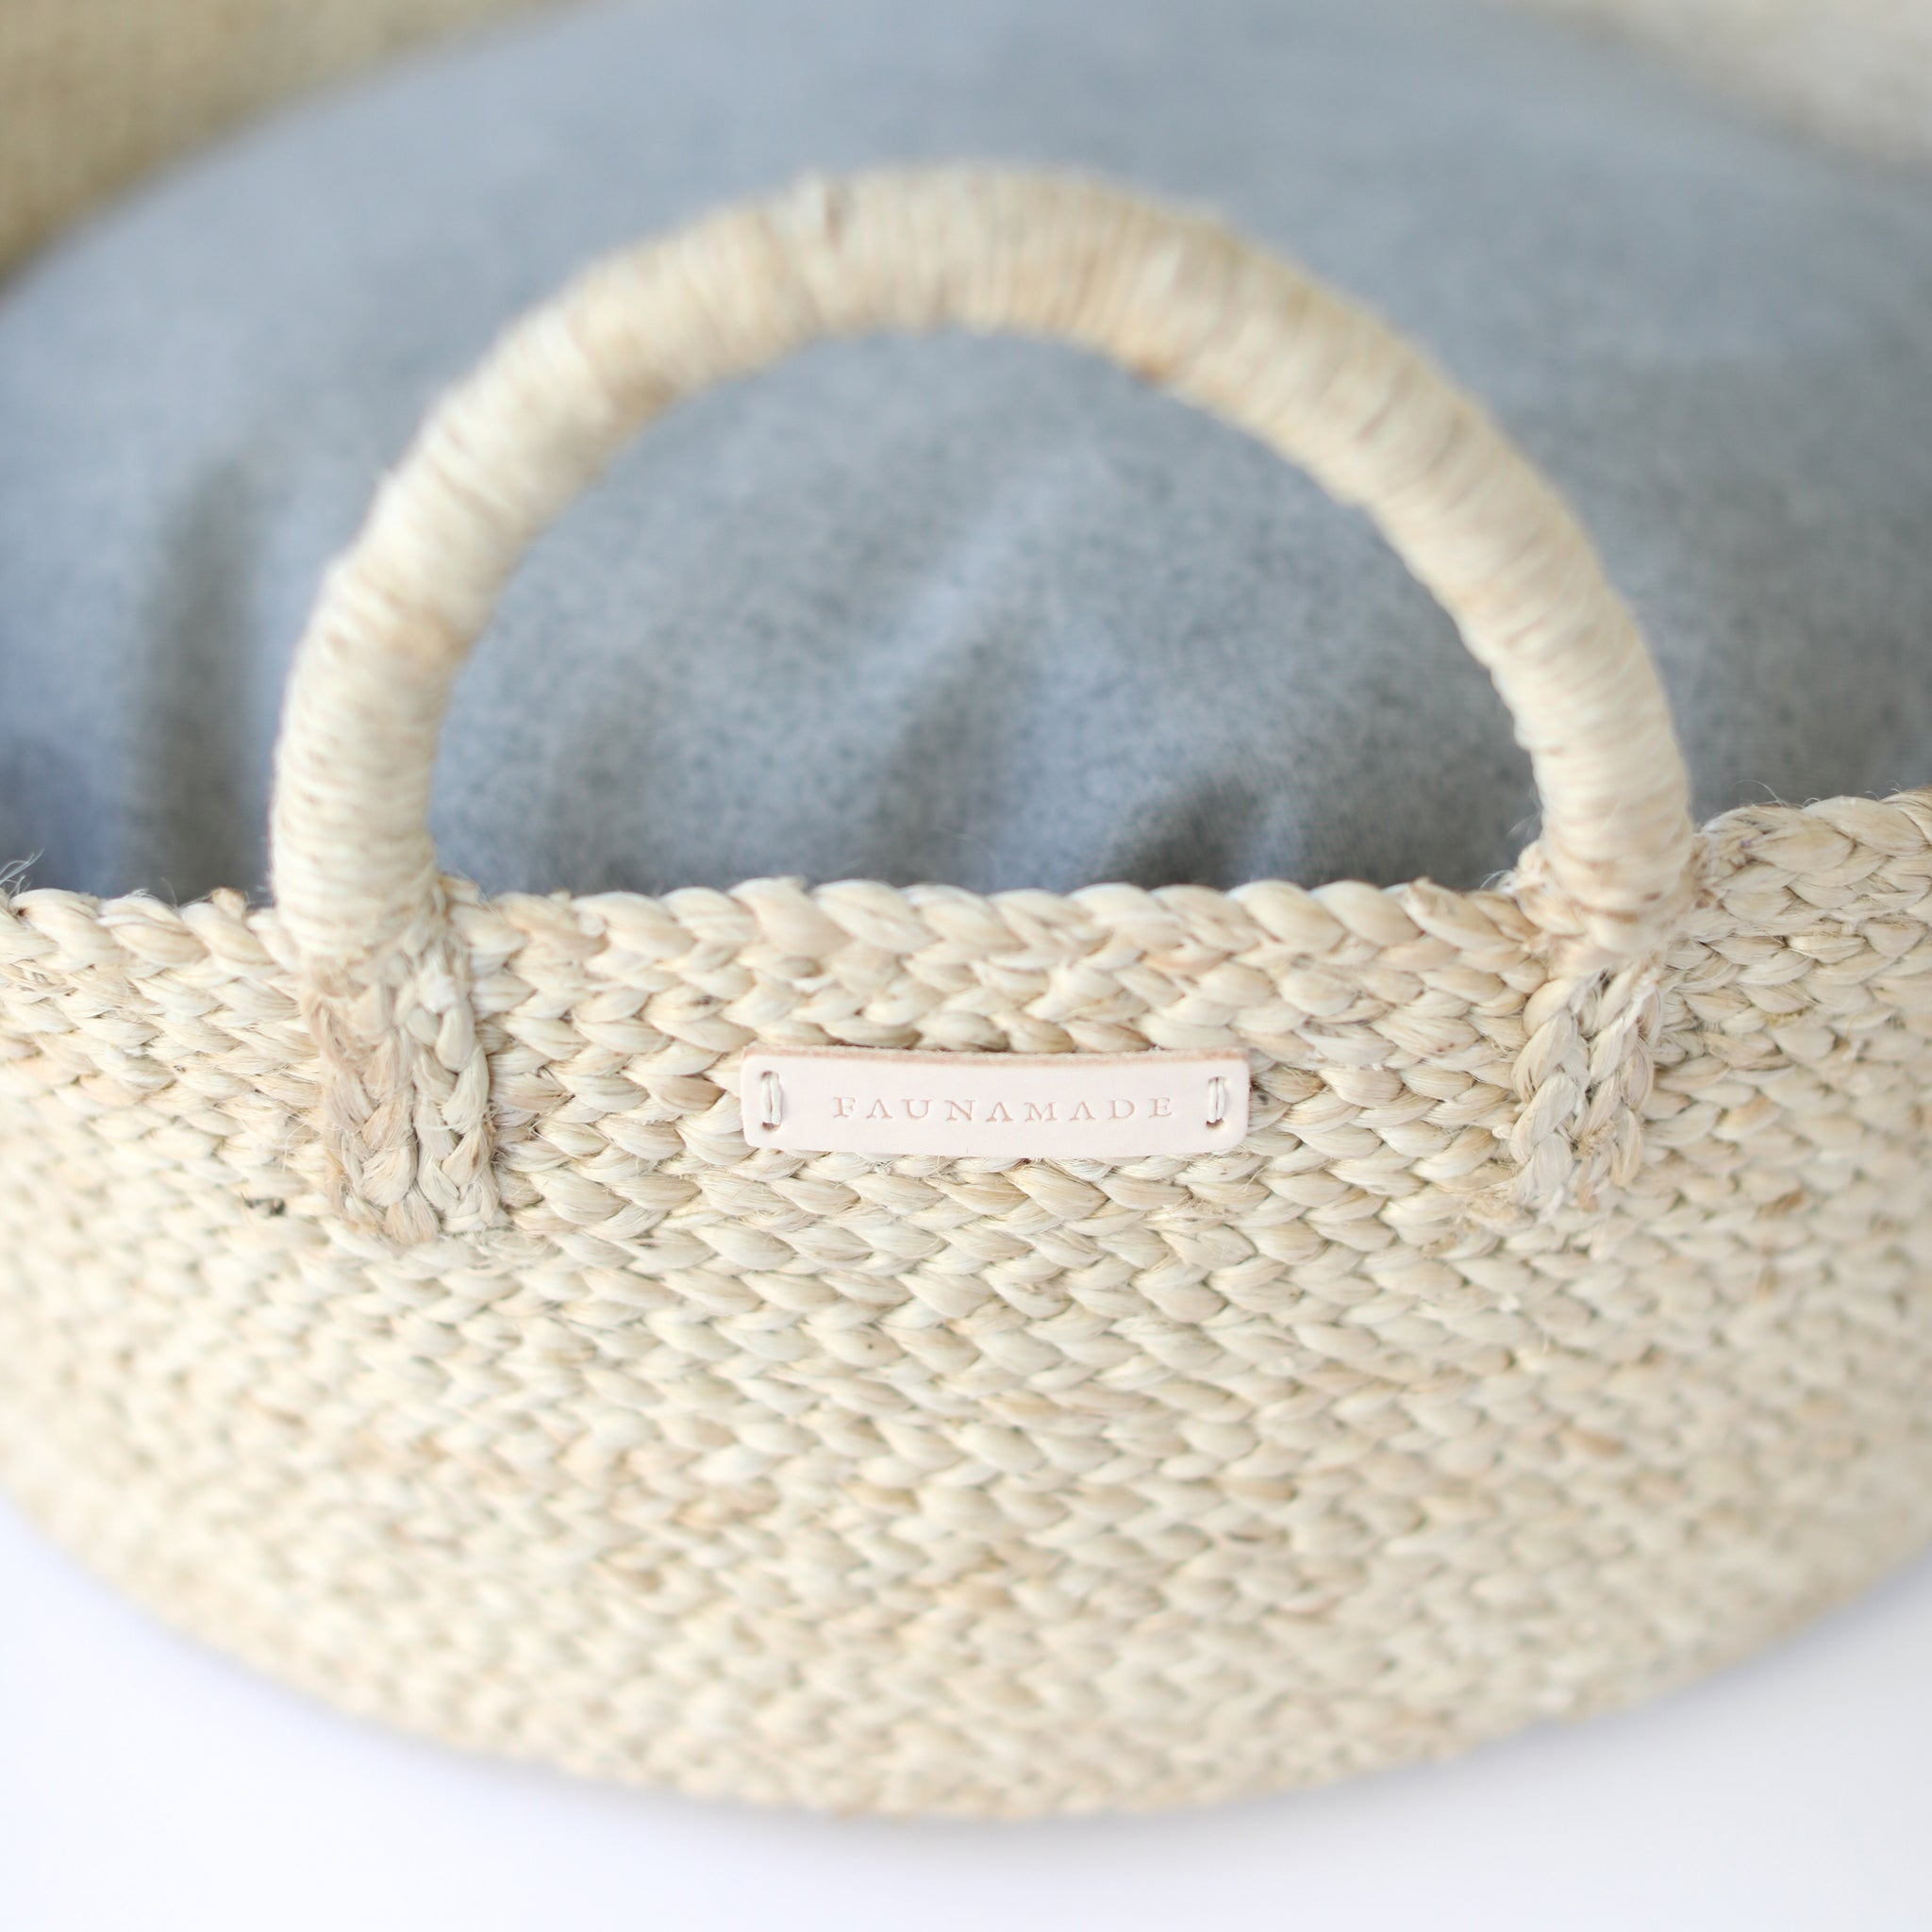 Faunamade Pet Bed Basket for dogs and cats in jute and gray flannel